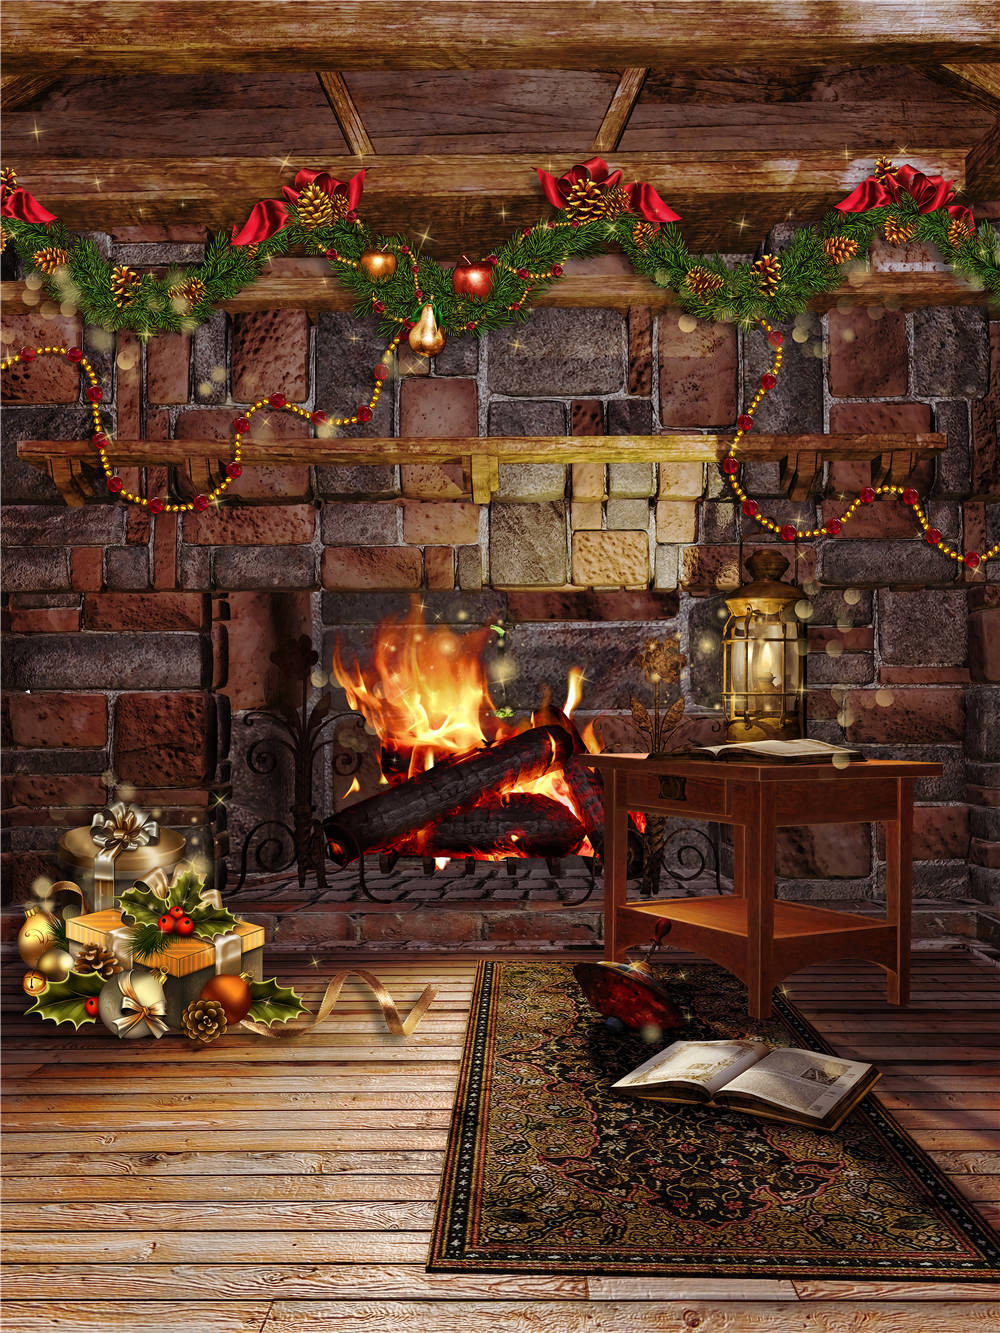 Vinyl Christmas Photo Props Studio Fireplace Backdrops Table Wooden Floor Photography Background 5x7ft or 3x5ft christmas053 ocean photo studio props sky background vinyl cloud photography backdrops wooden floor 5x7ft or 3x5ft jieqx297